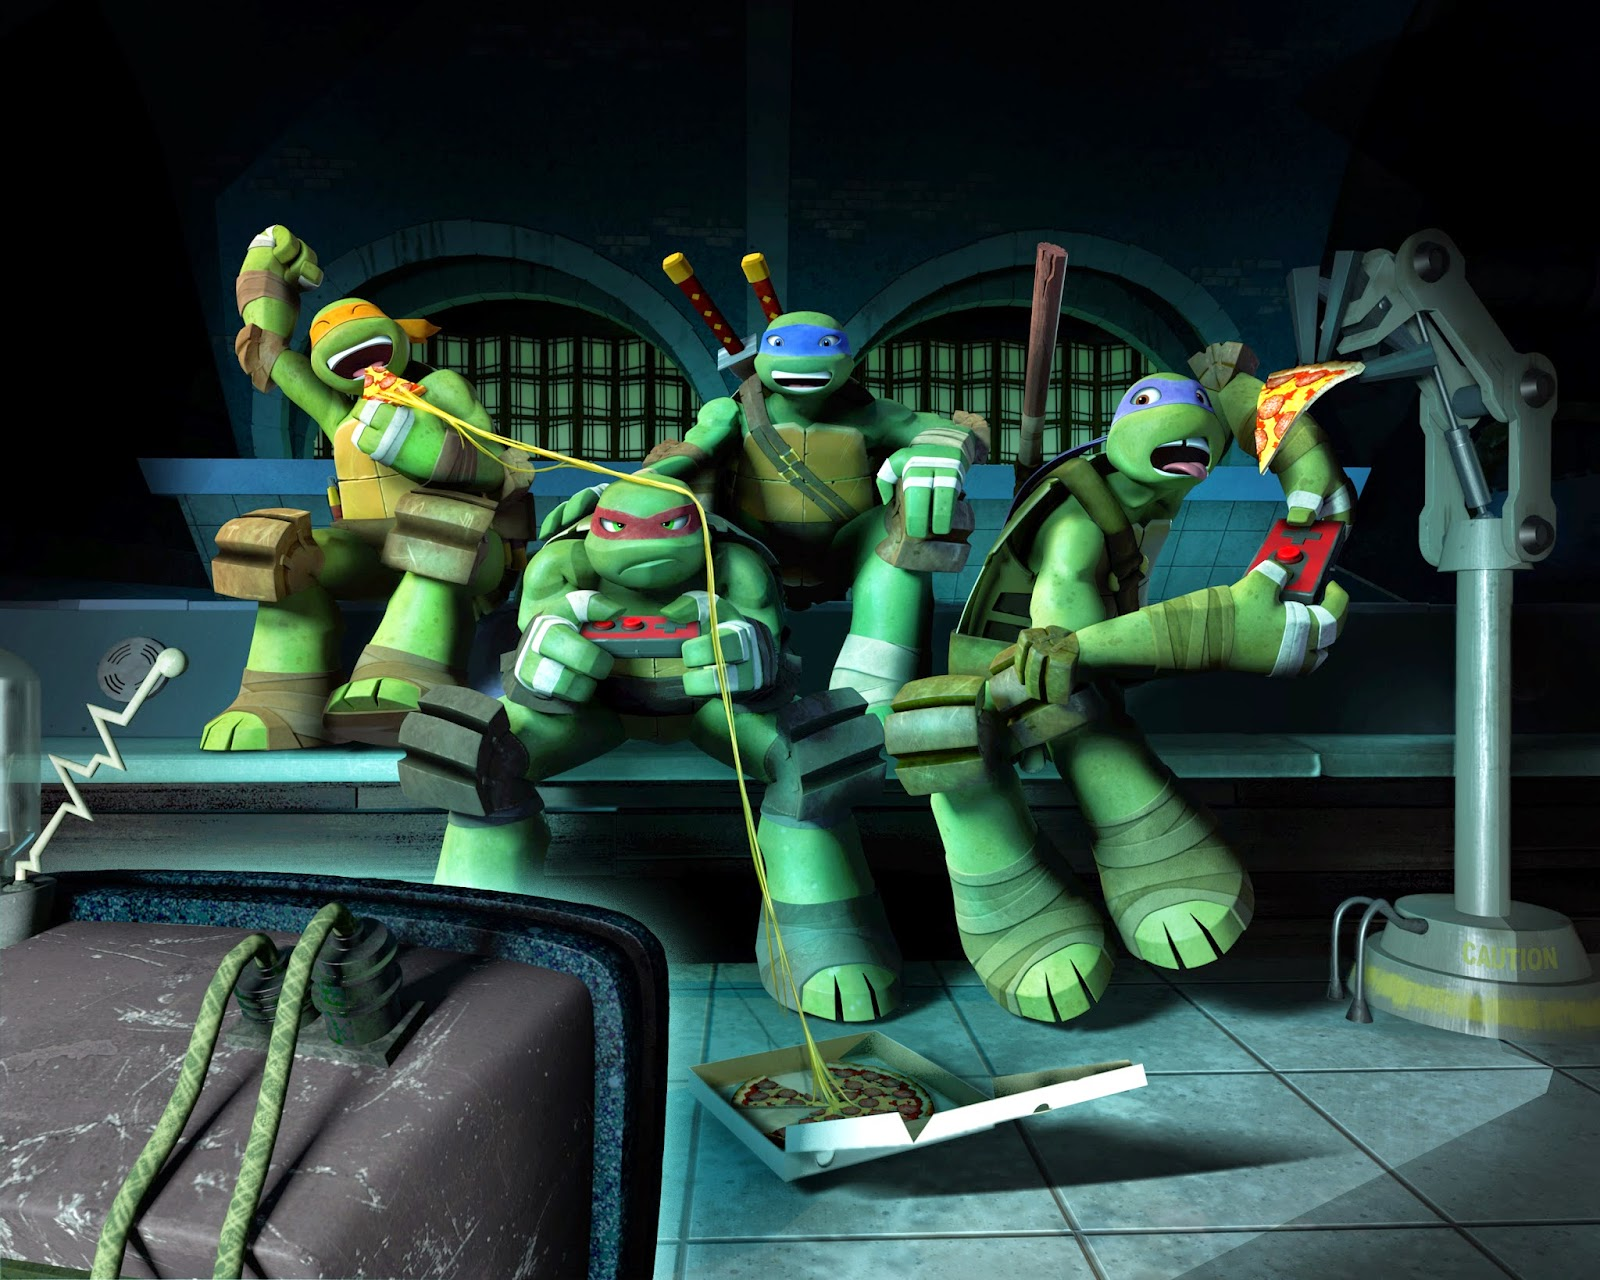 nickelodeon games teenage mutant ninja turtles